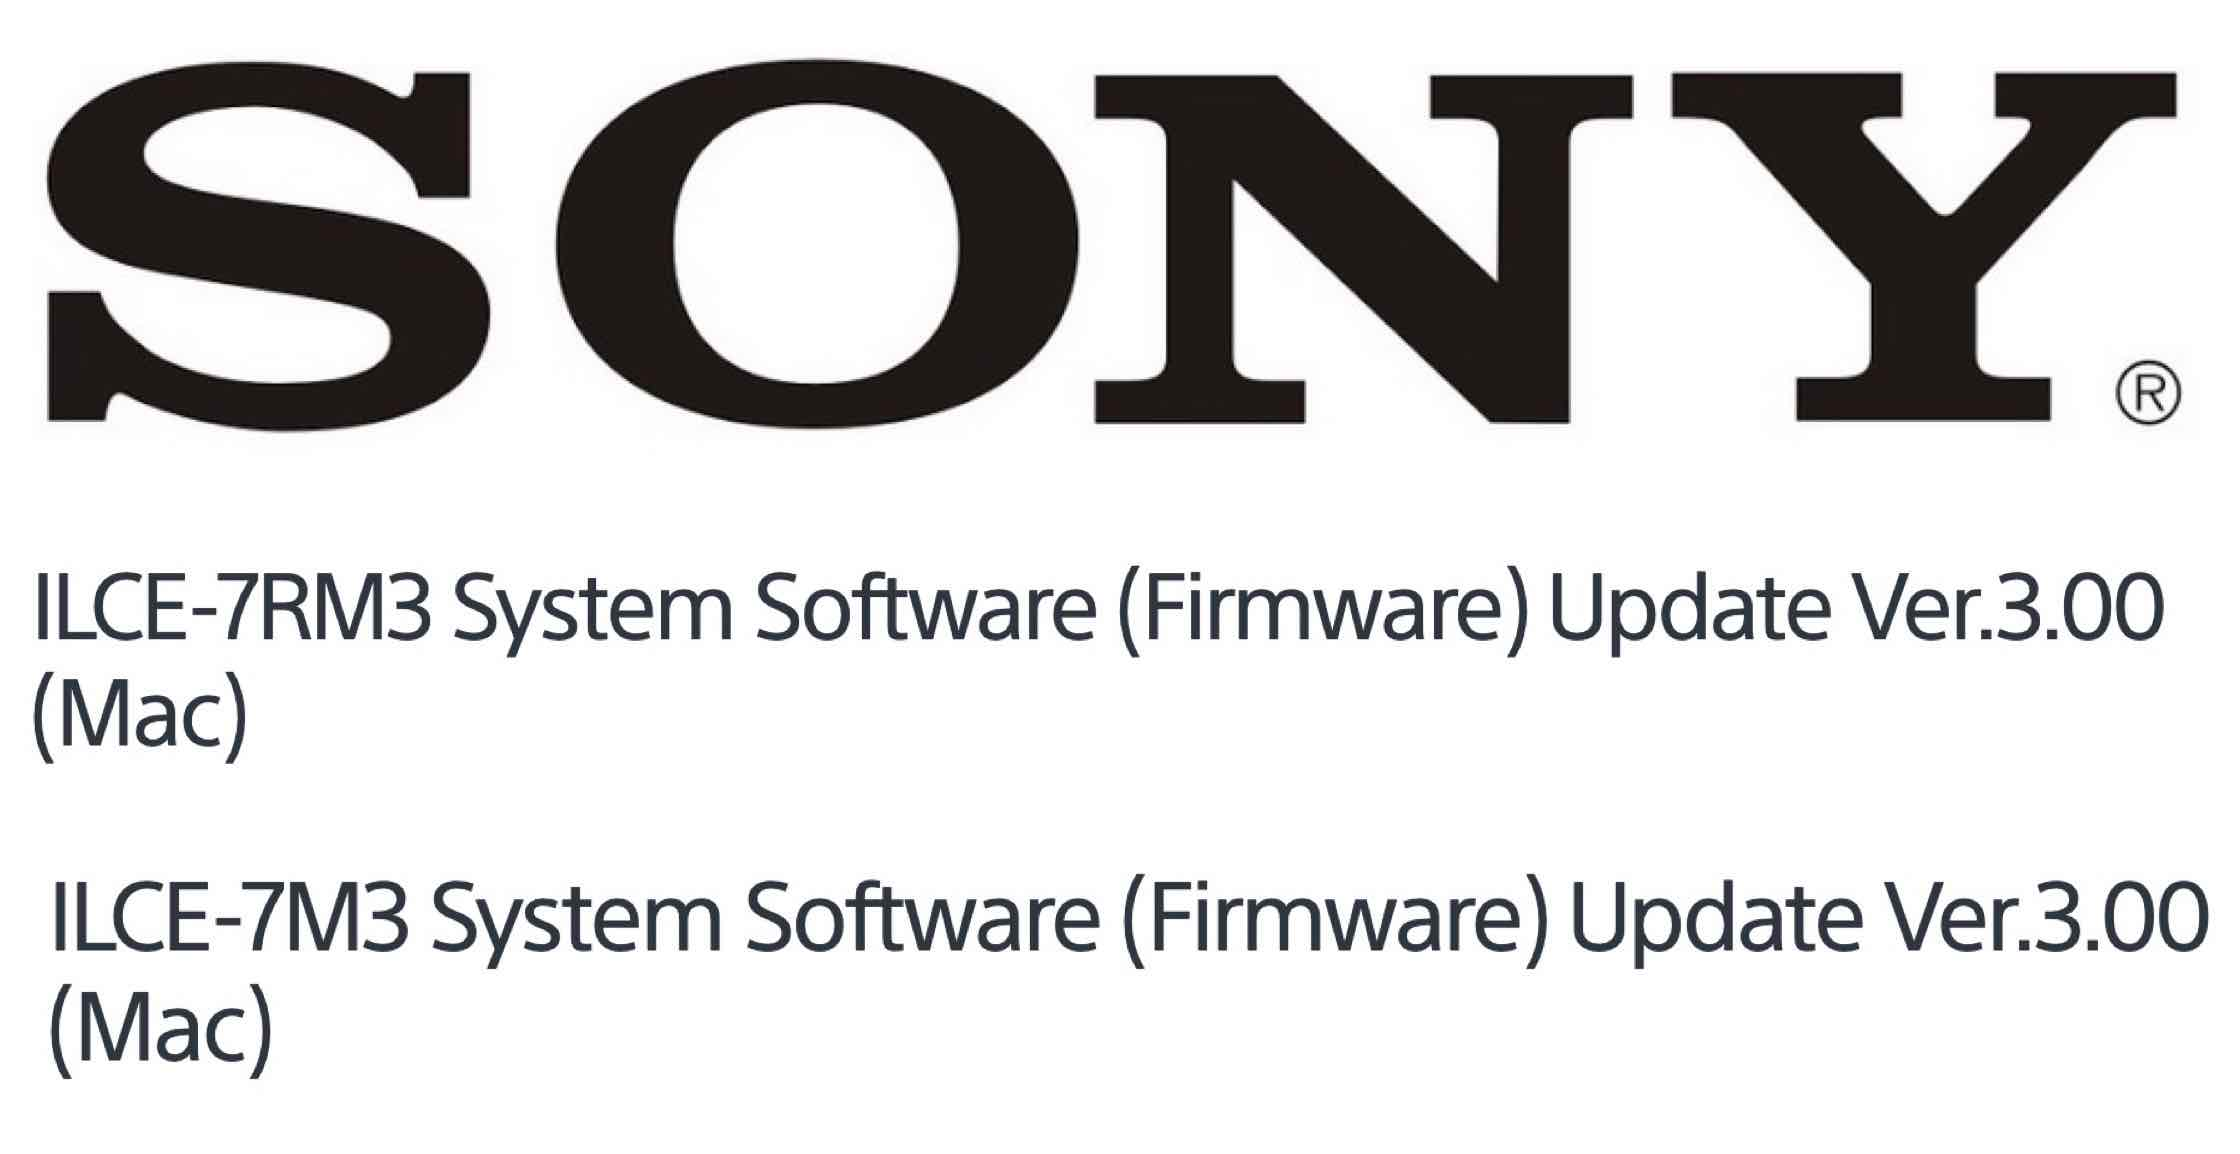 Sony officially released the new A7rIII and A7III firmware updates